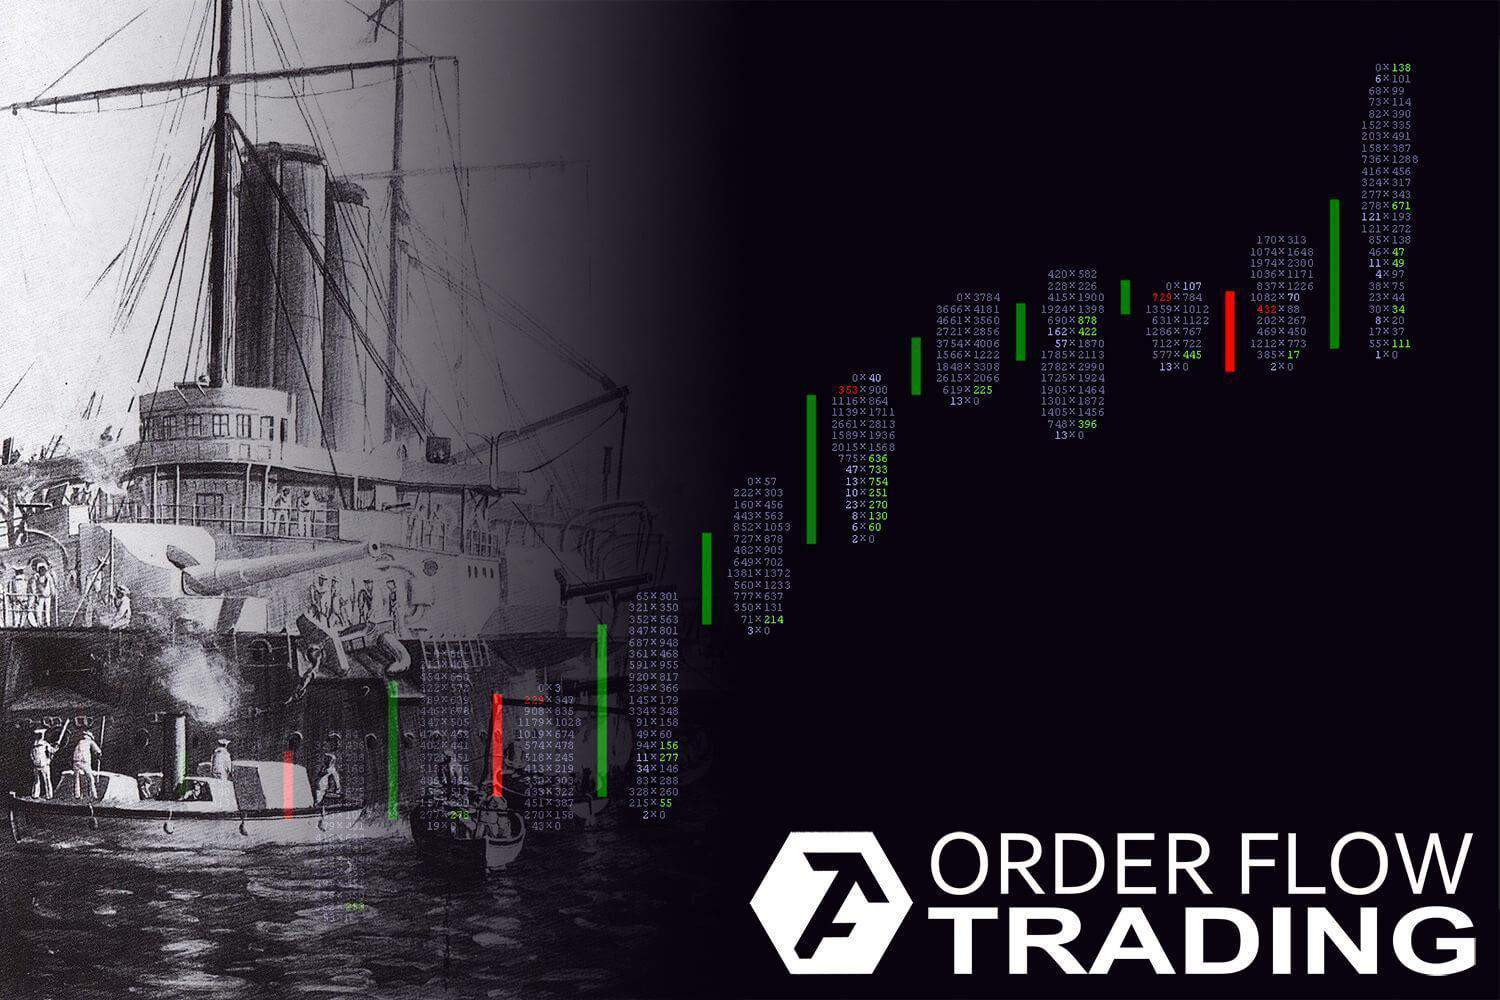 Imbalance: trade on the side of superior forces